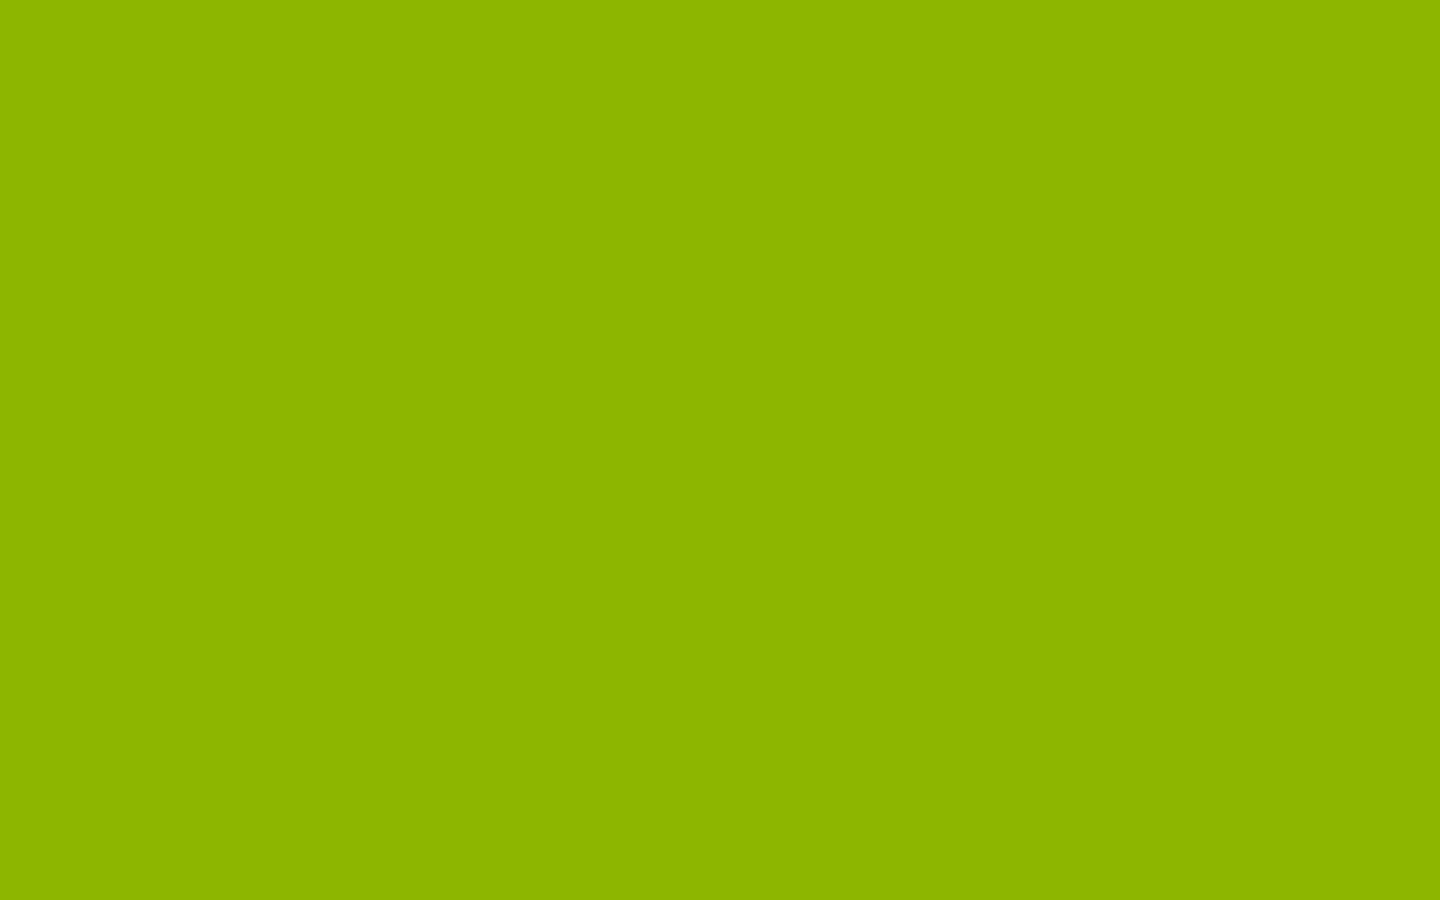 1440x900 Apple Green Solid Color Background